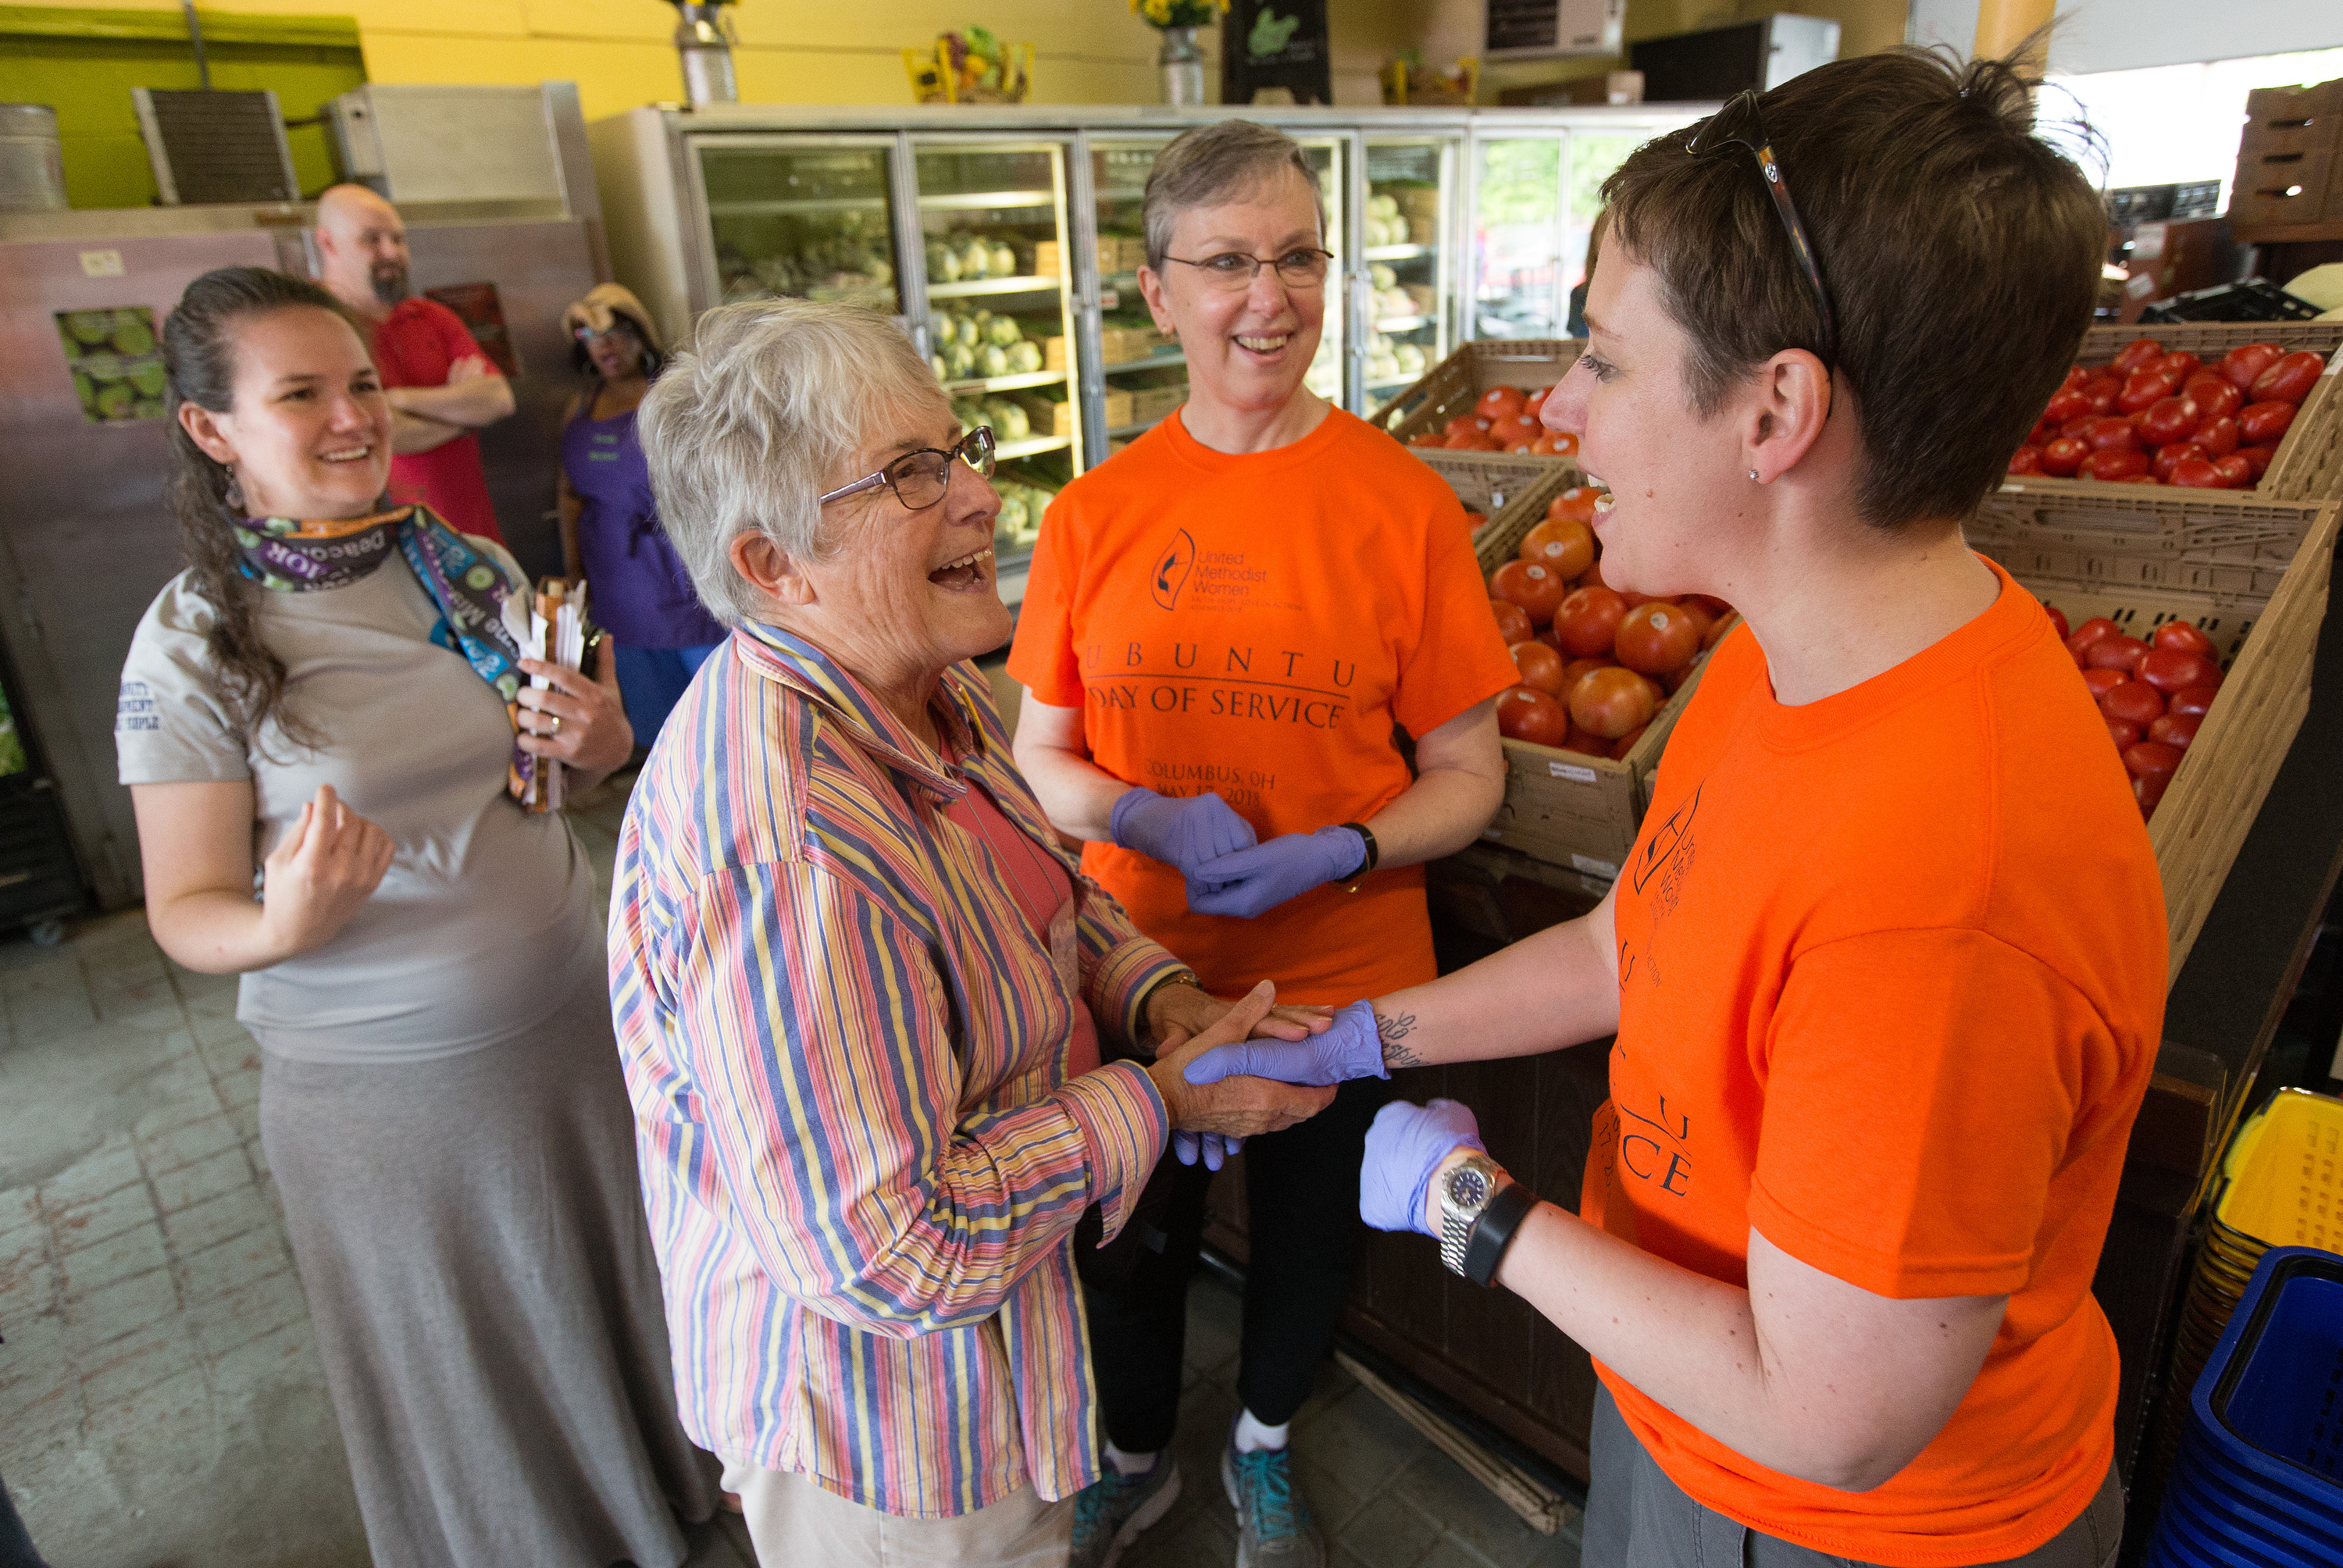 Shannon Priddy (right), the national president of United Methodist Women, and Harriett Jane Olson (center), the organization's chief executive officer, visit with Linda Miller at the All People's Fresh Market in Columbus, Ohio, during the Ubuntu Day of Service, part of the United Methodist Women Assembly 2018 in May. File photo by Mike DuBose, UMNS.